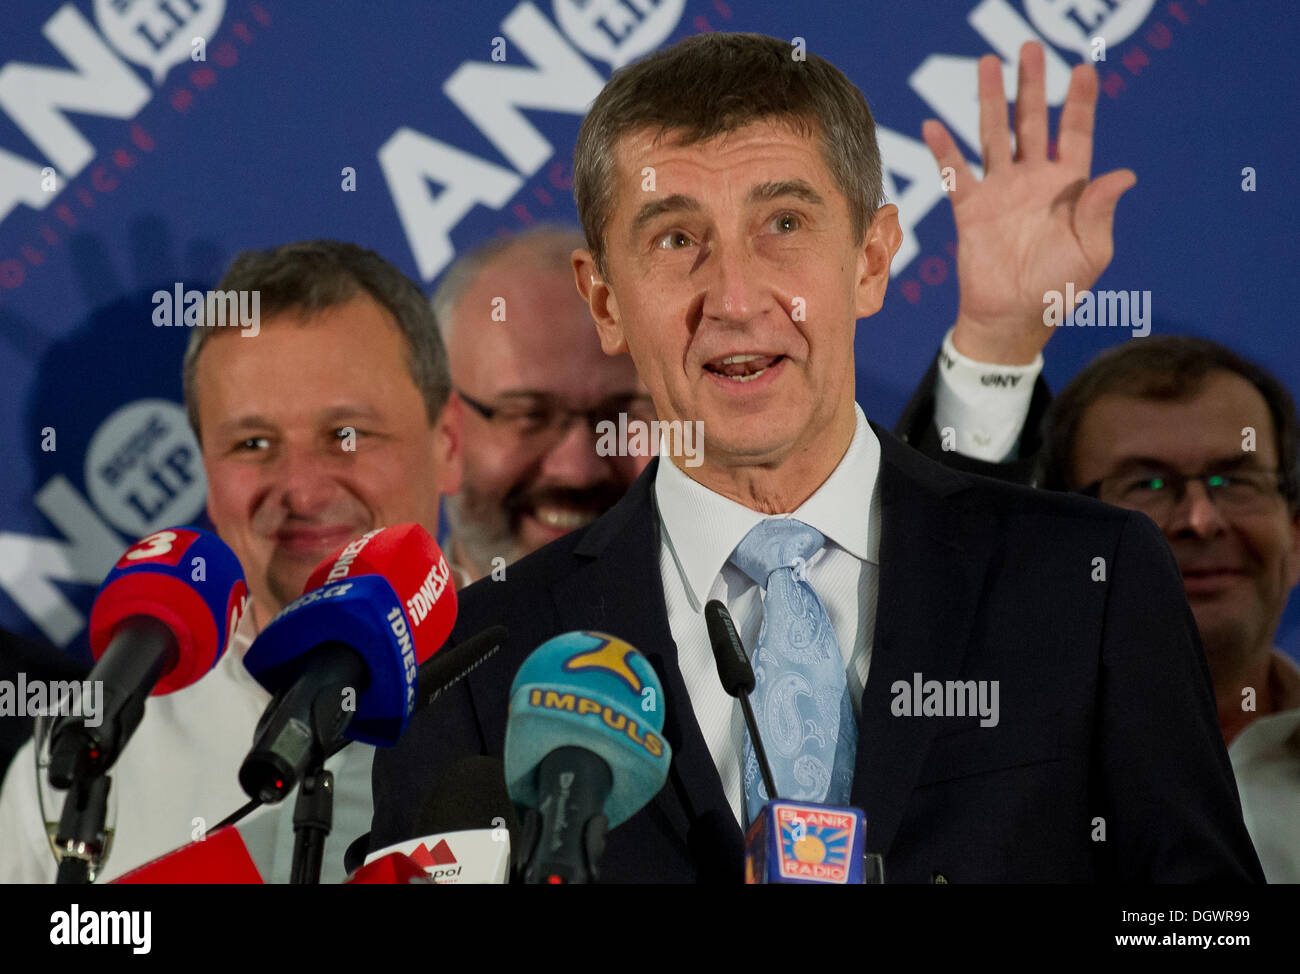 Prague, Czech Republic. 26th Oct, 2013. Czech billionaire and the leader of ANO 2011 movement Andrej Babis smiles after early parliamentary elections finished, in Prague, on Saturday, Oct. 26, 2013. The new centrist movement finished second, tightly after the Czech Social Democratic Party (CSSD). Credit:  Vit Simanek/CTK/Alamy Live News - Stock Image